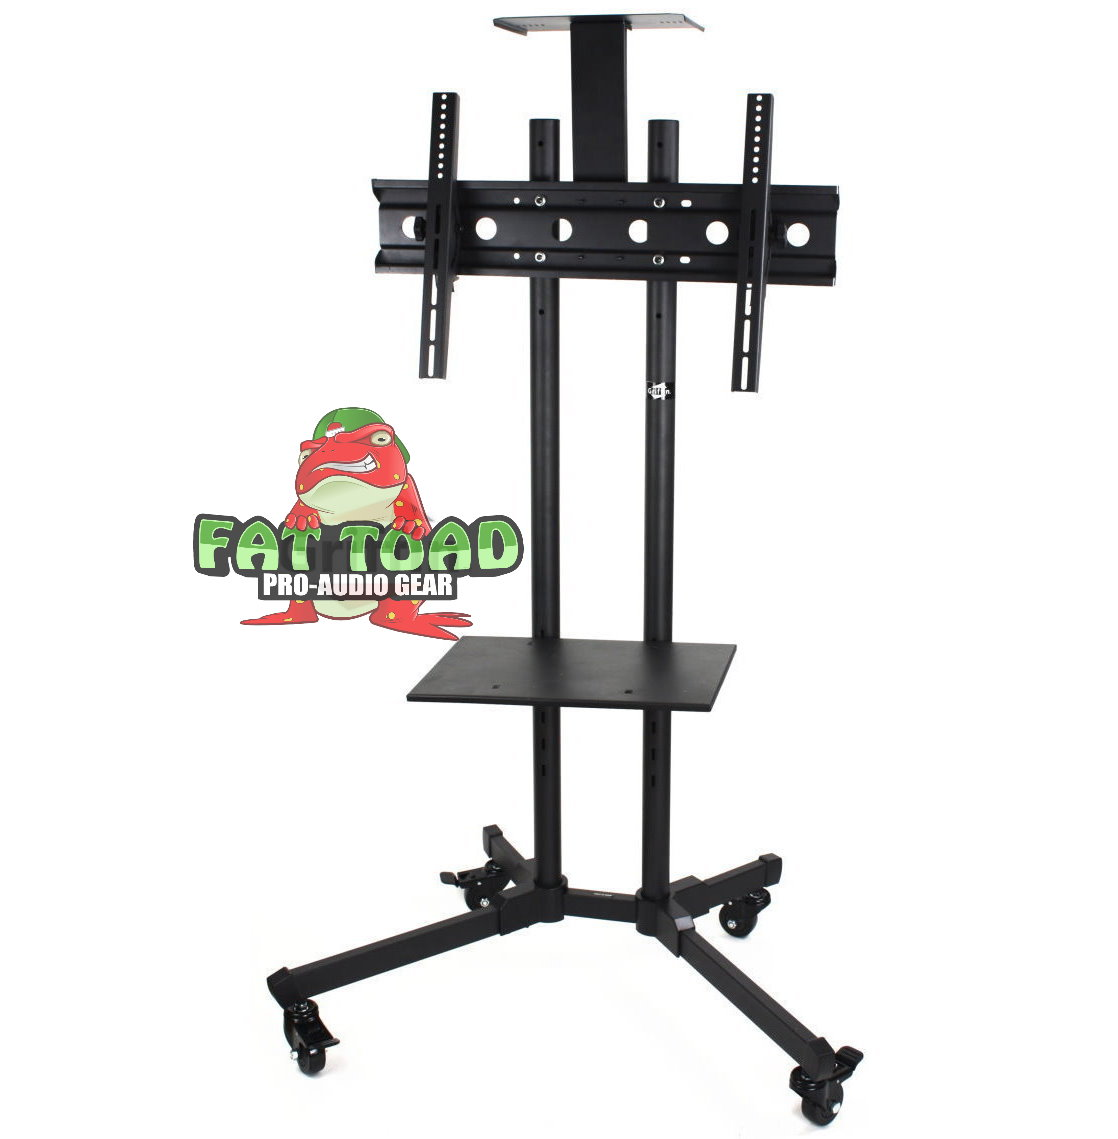 LCD TV Cart by Fat Toad Rolling Flat Panel Screen Stand with DVD Player Shelf Deluxe Mobile Plasma Television/Monitor Console Mount on Wheels & 2 Storage Shelves Suitable for AV, Home, or Business